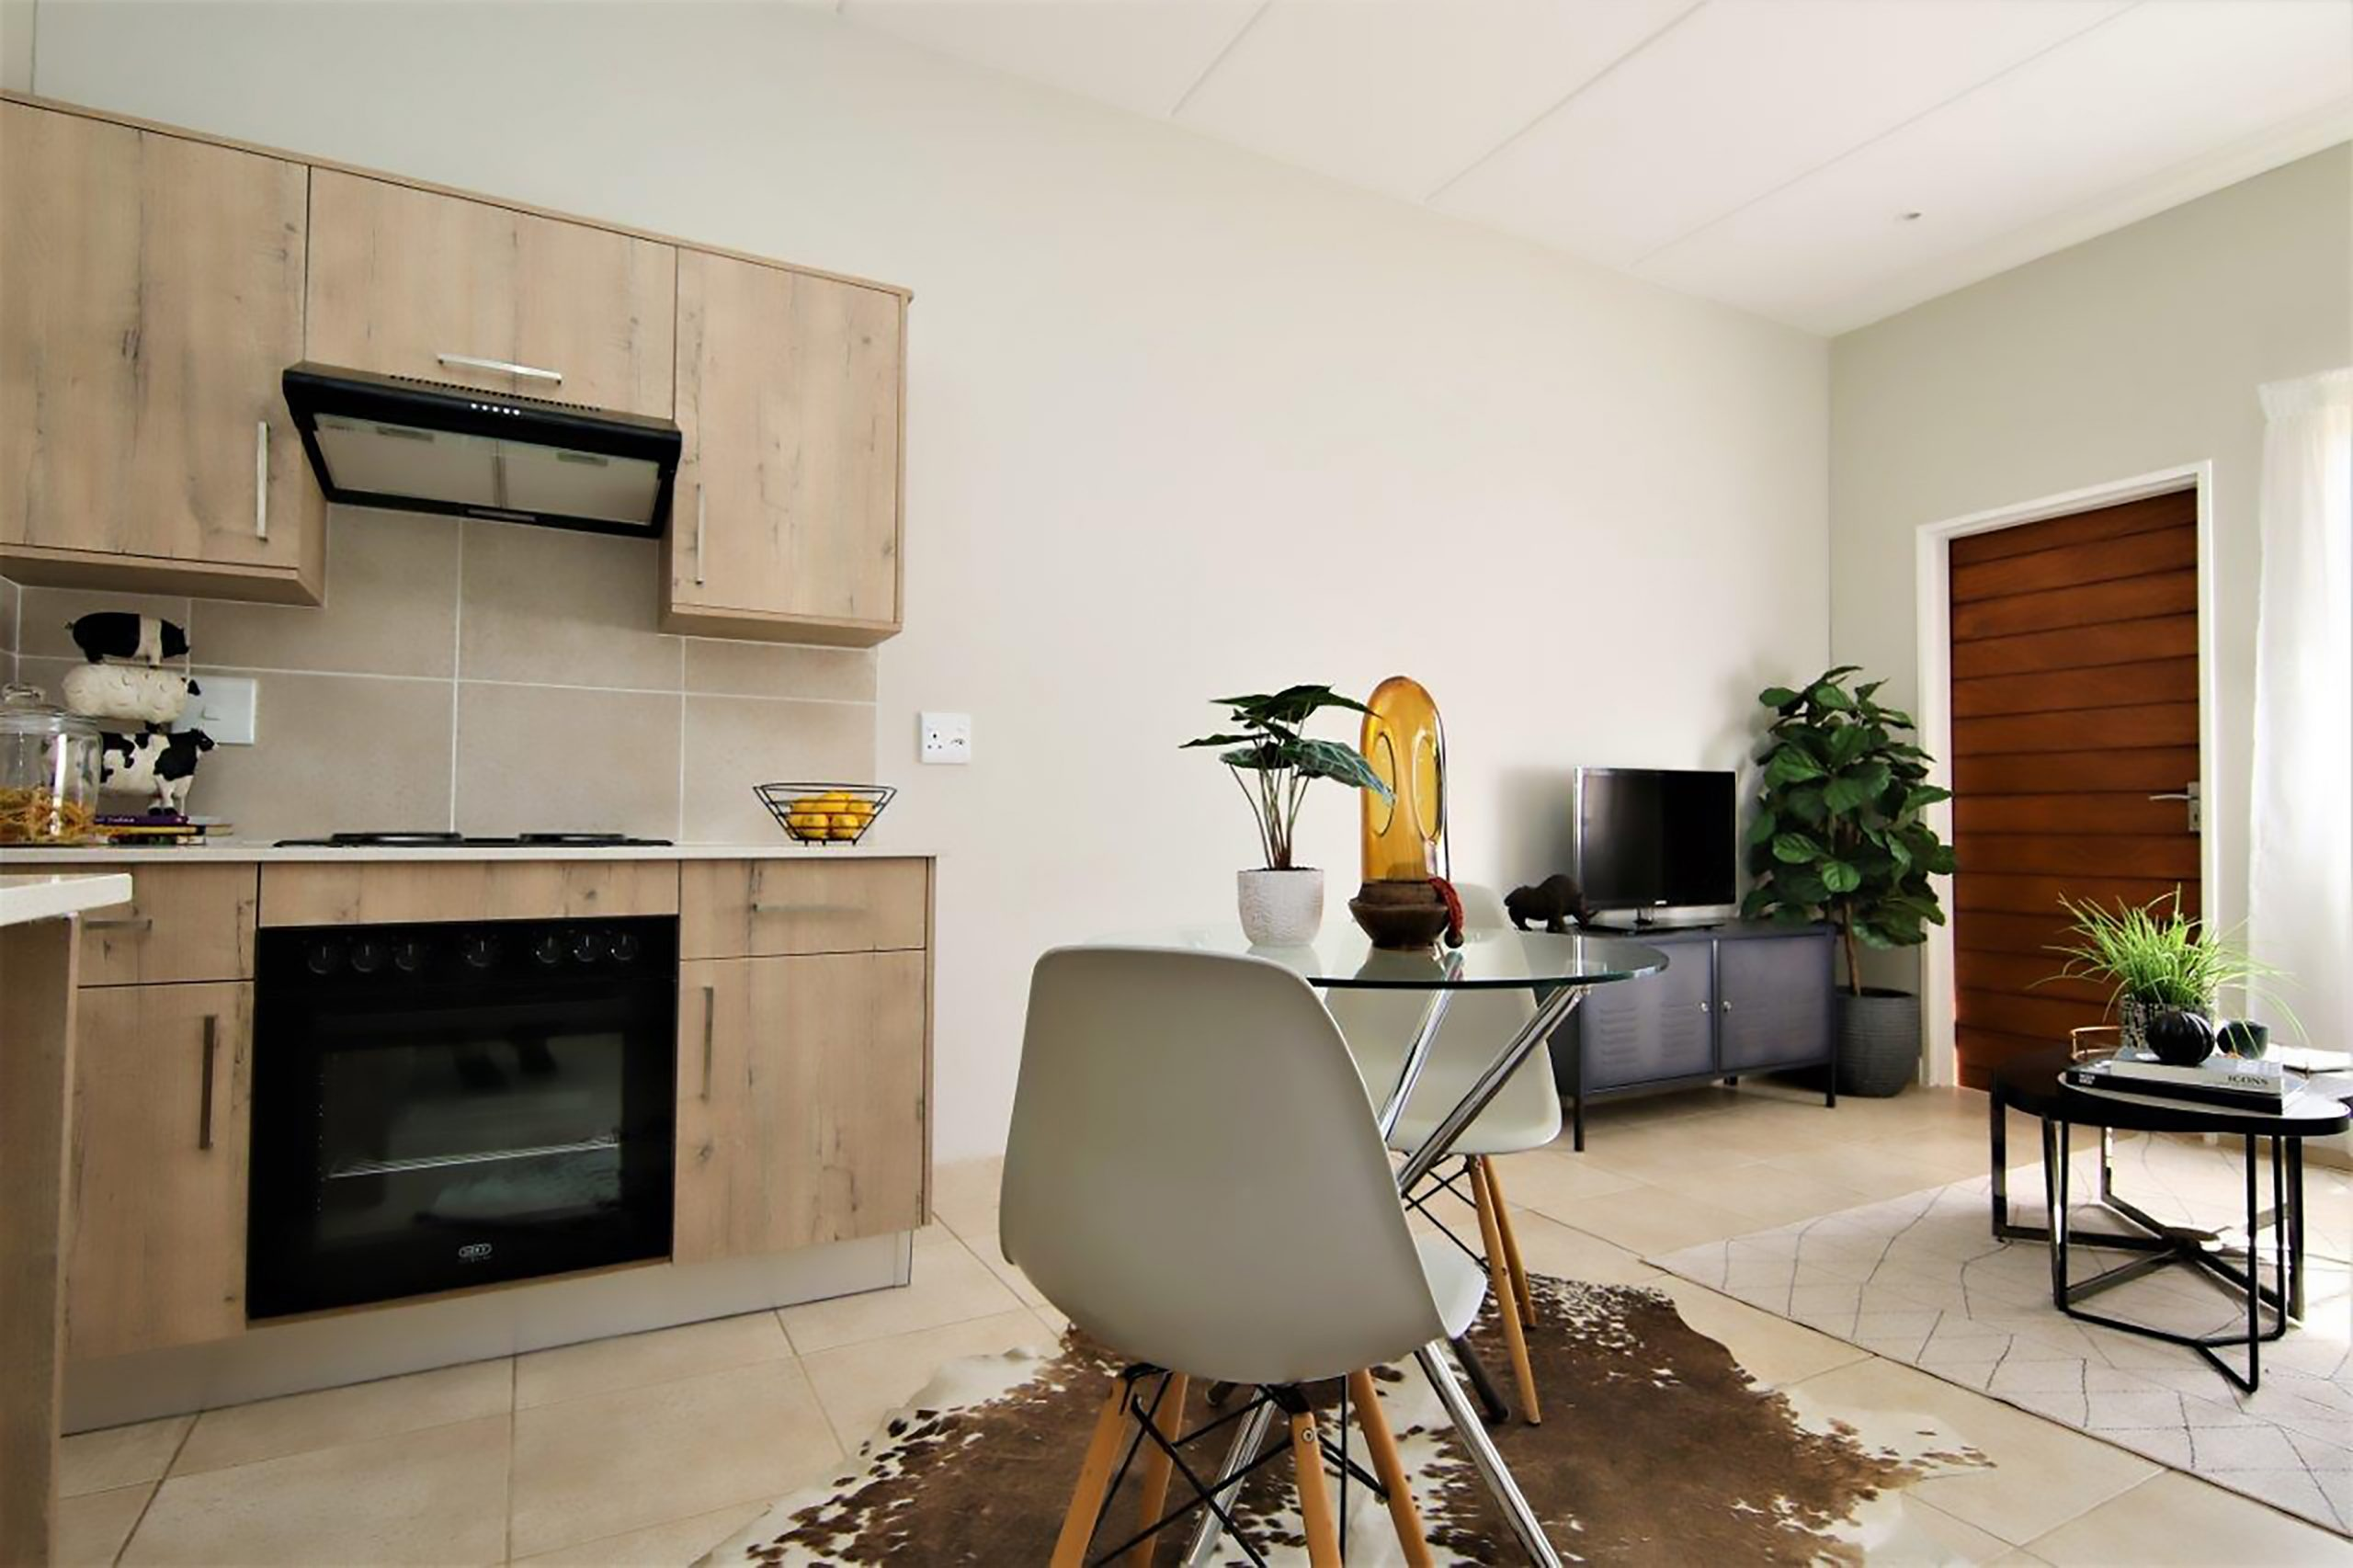 Property development in Randburg, one of the exclusive investment opportunities from PropertyClan